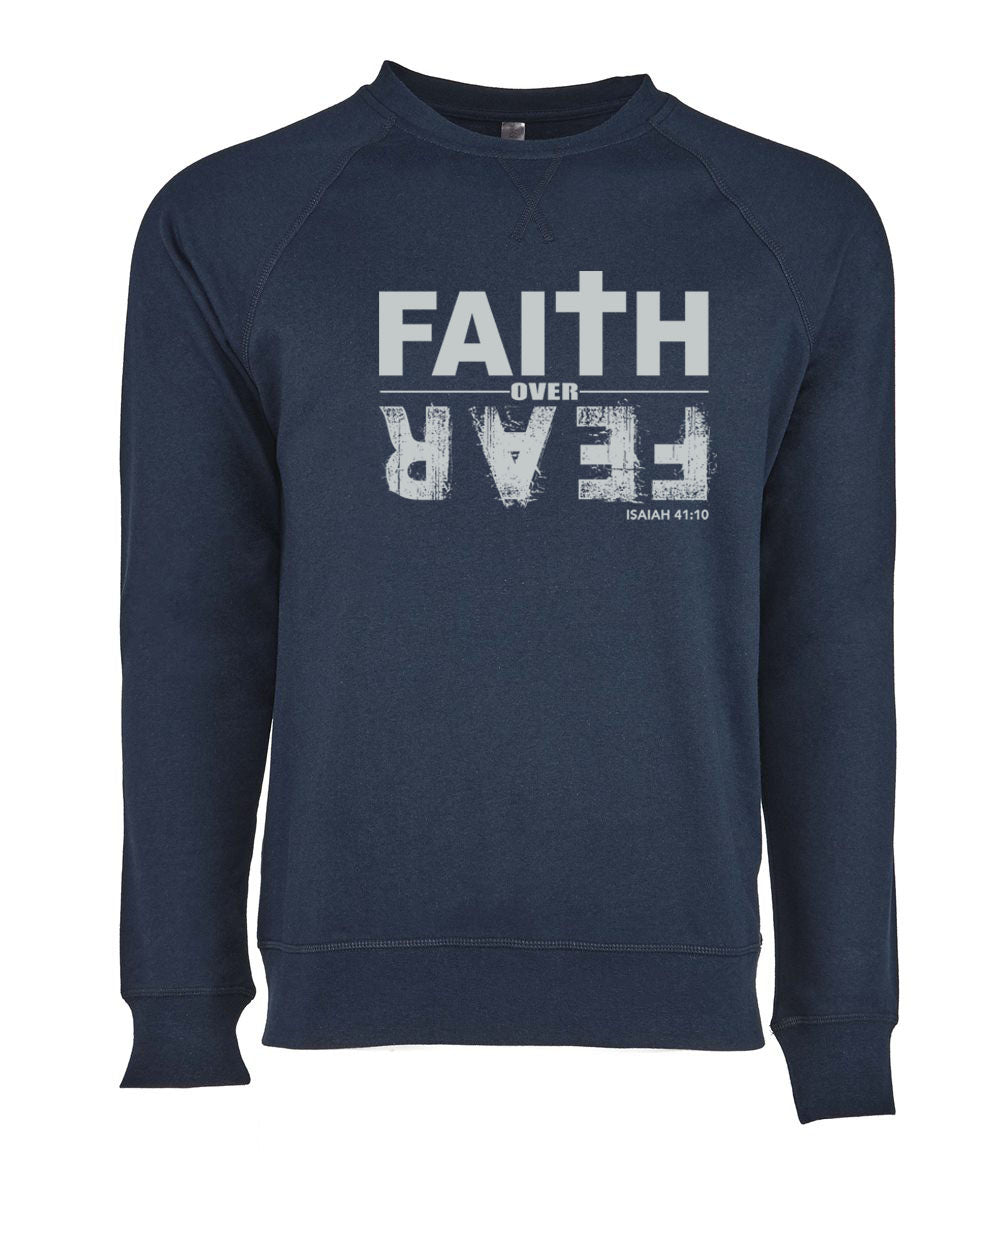 Faith Over Fear -  Light Weight Sweatshirt - 5.3 oz.